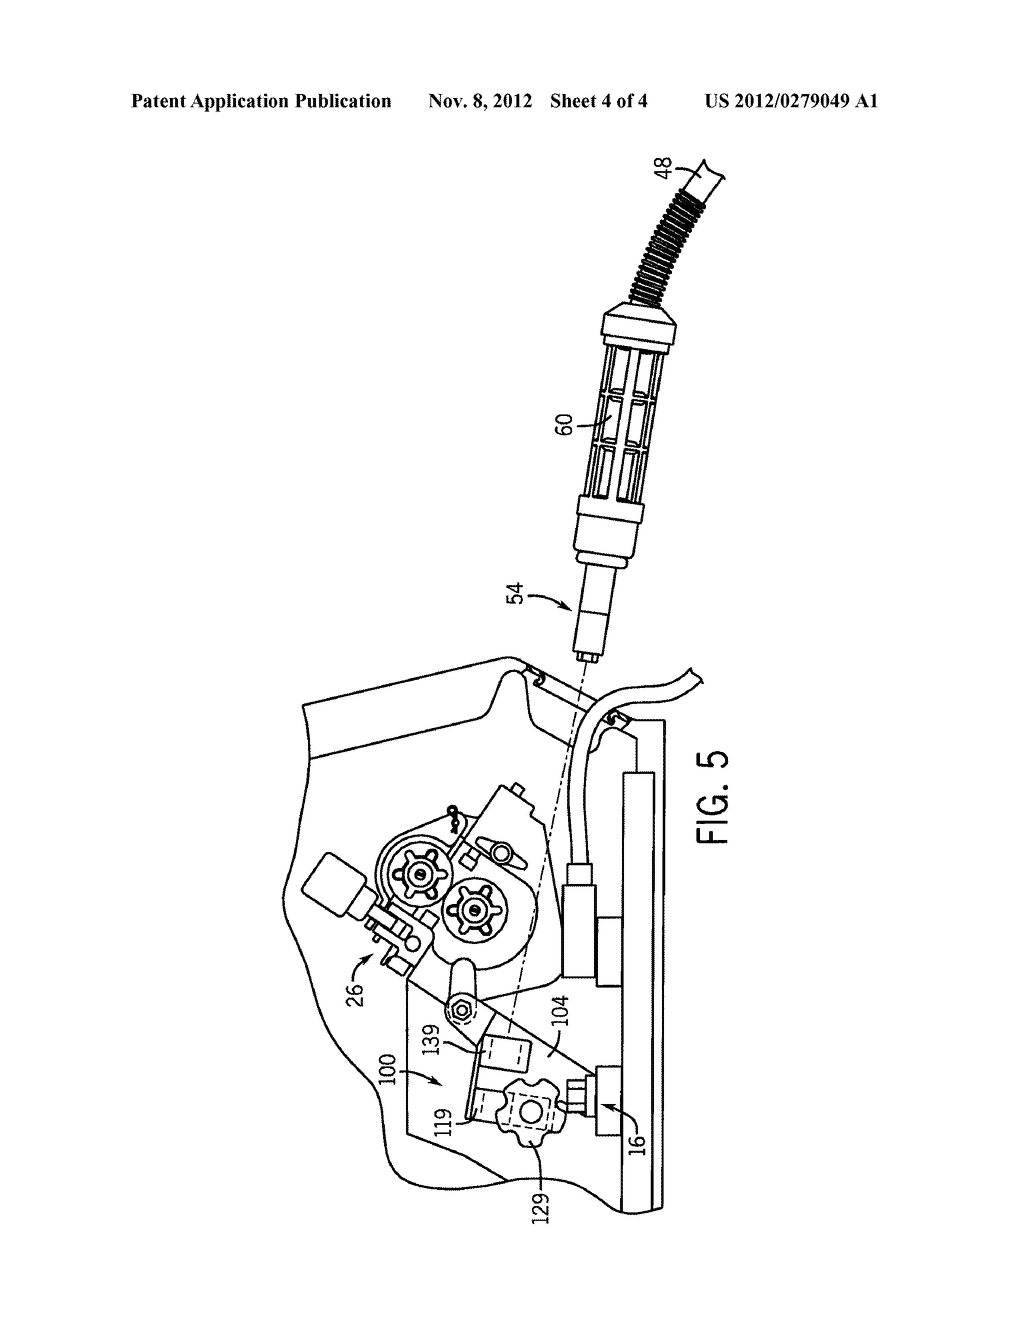 Dual Power Pin Connector Assembly For A Mig Welding Machine Diagram Of Schematic And Image 05